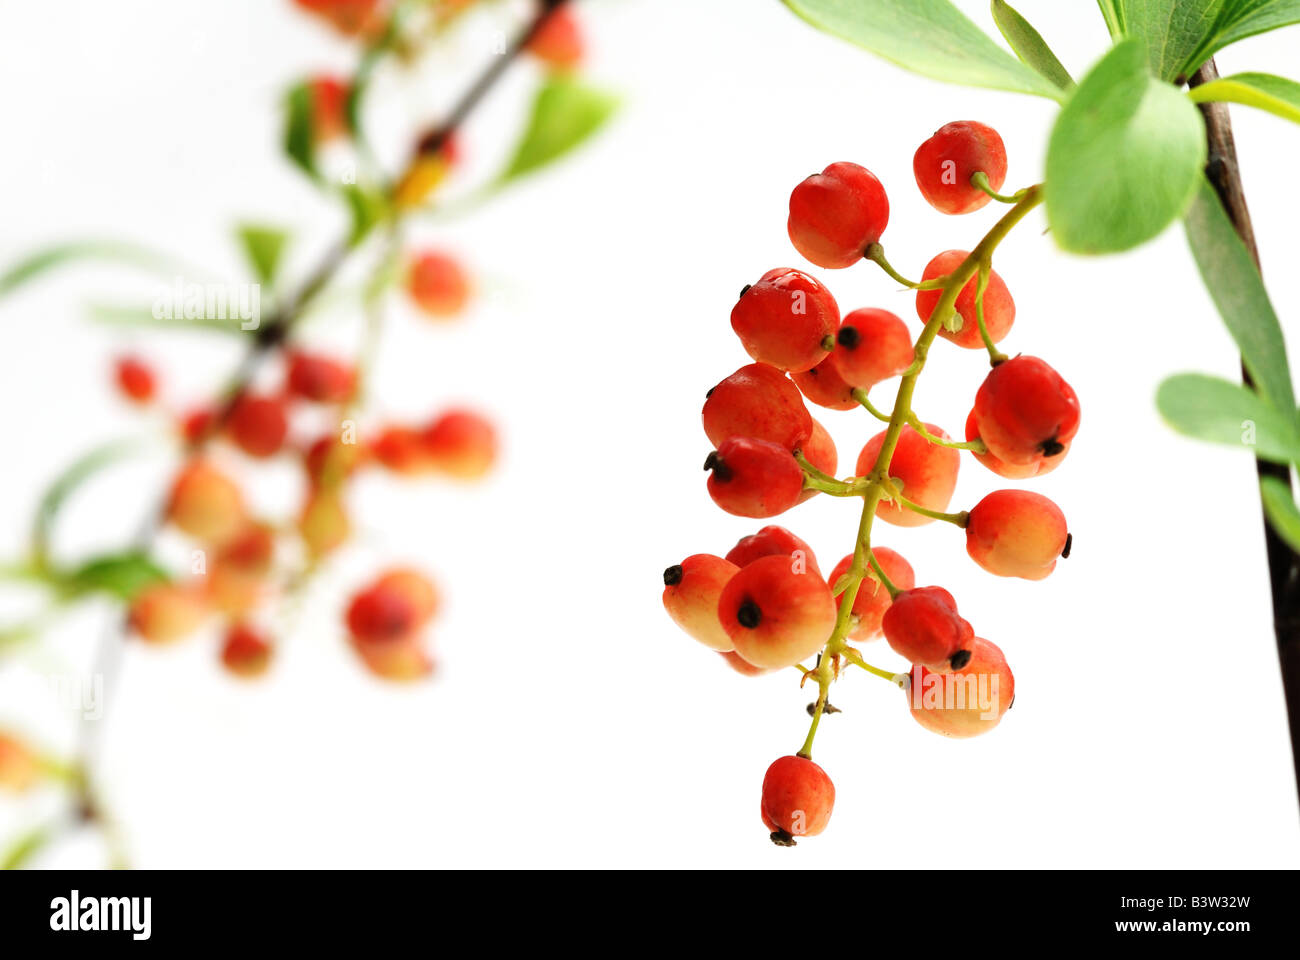 red fruits - Stock Image